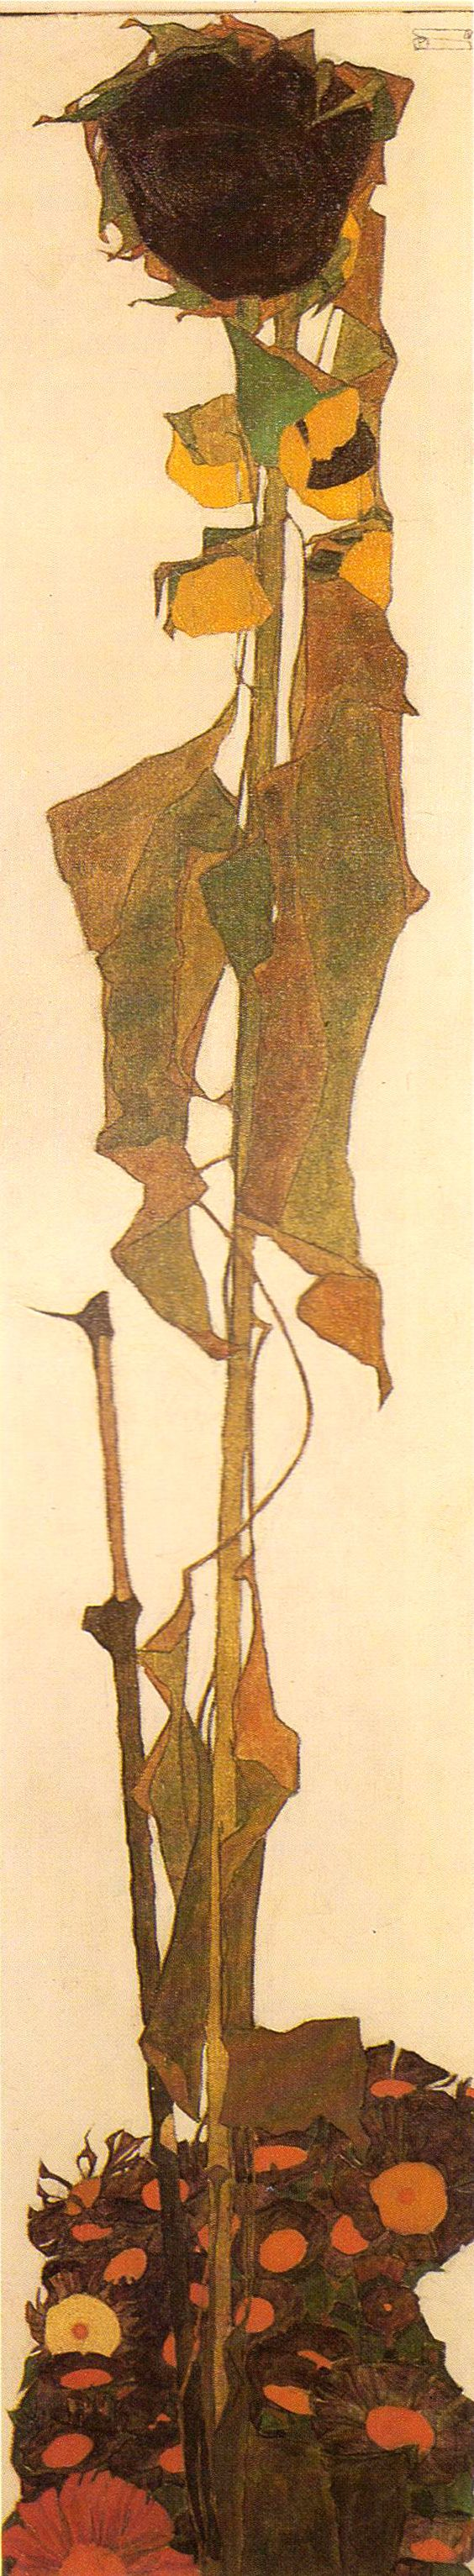 Sunflower by Egon Schiele, 1909-10. Oil on canvas